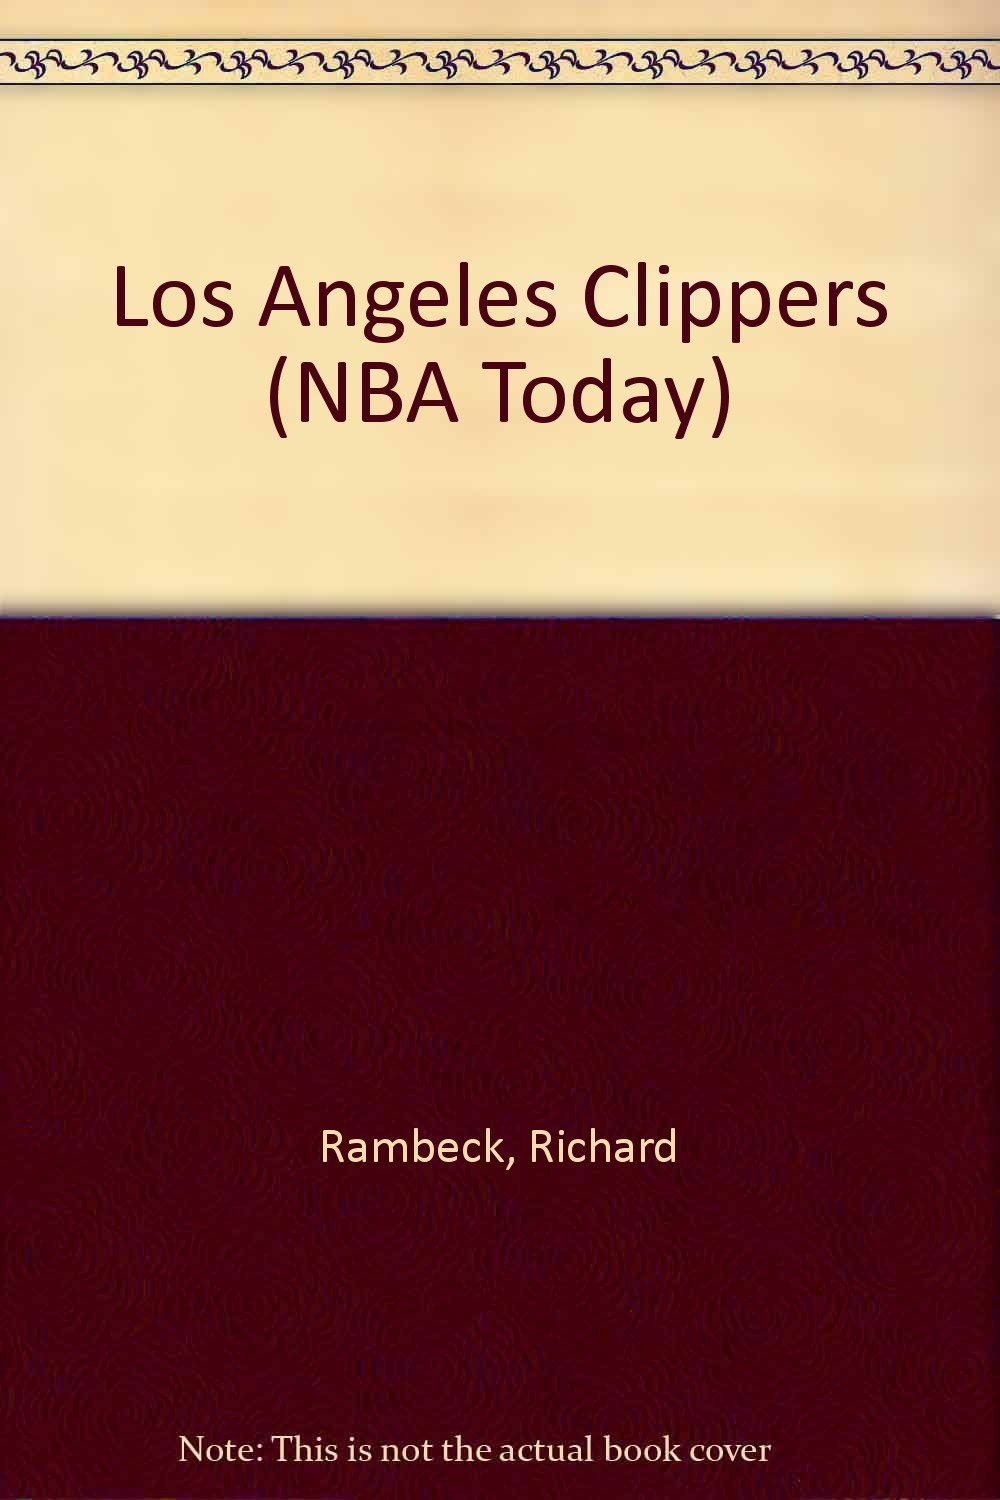 Los Angeles Clippers (Nba Today)